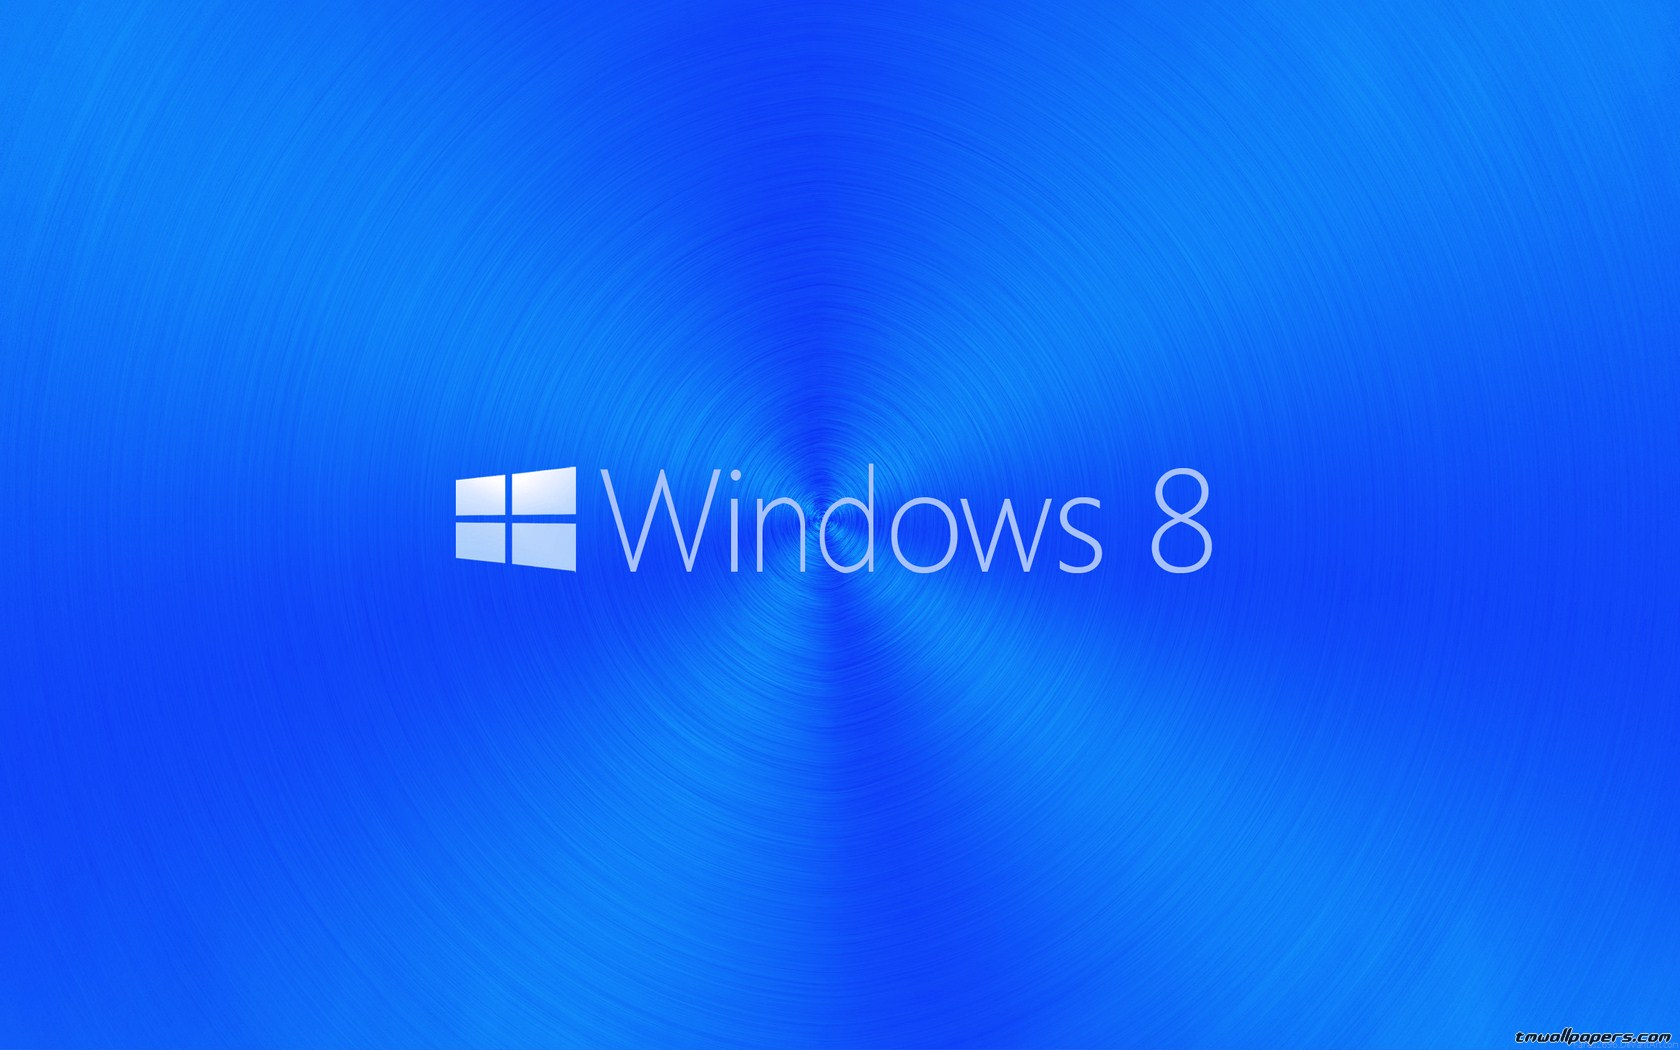 TMWallpapers Wide wallpapers e HD wallpapers   Windows 8 wallpapers 1680x1050